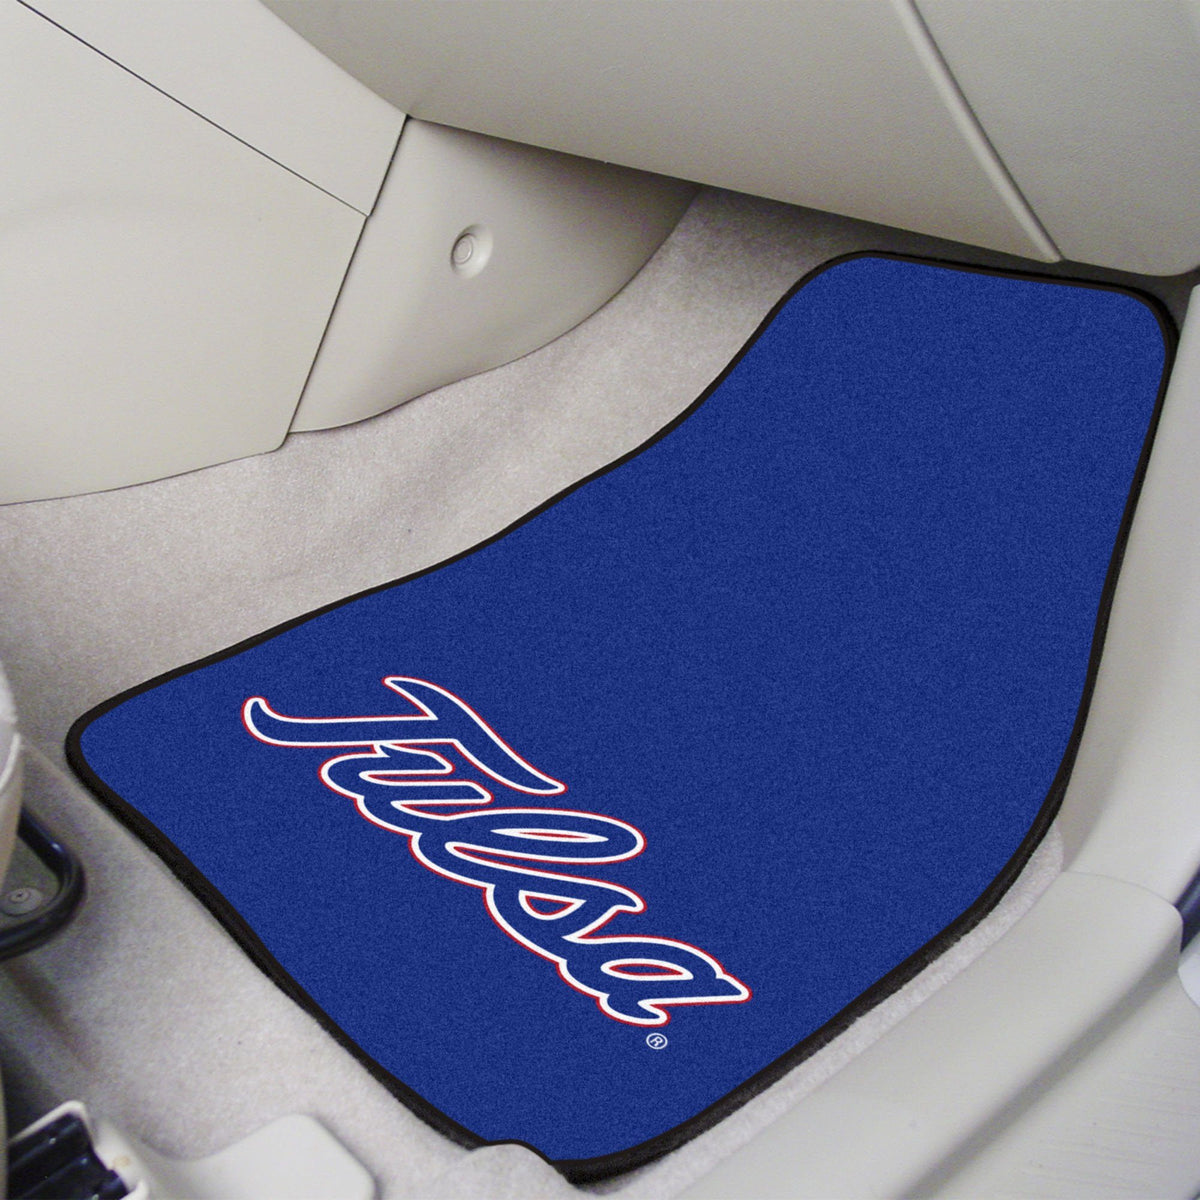 Collegiate - Carpet Car Mat, 2-Piece Set: T - Z Collegiate Car Mat, Front Car Mats, 2-pc Carpet Car Mat Set, Collegiate, Auto Fan Mats Tulsa